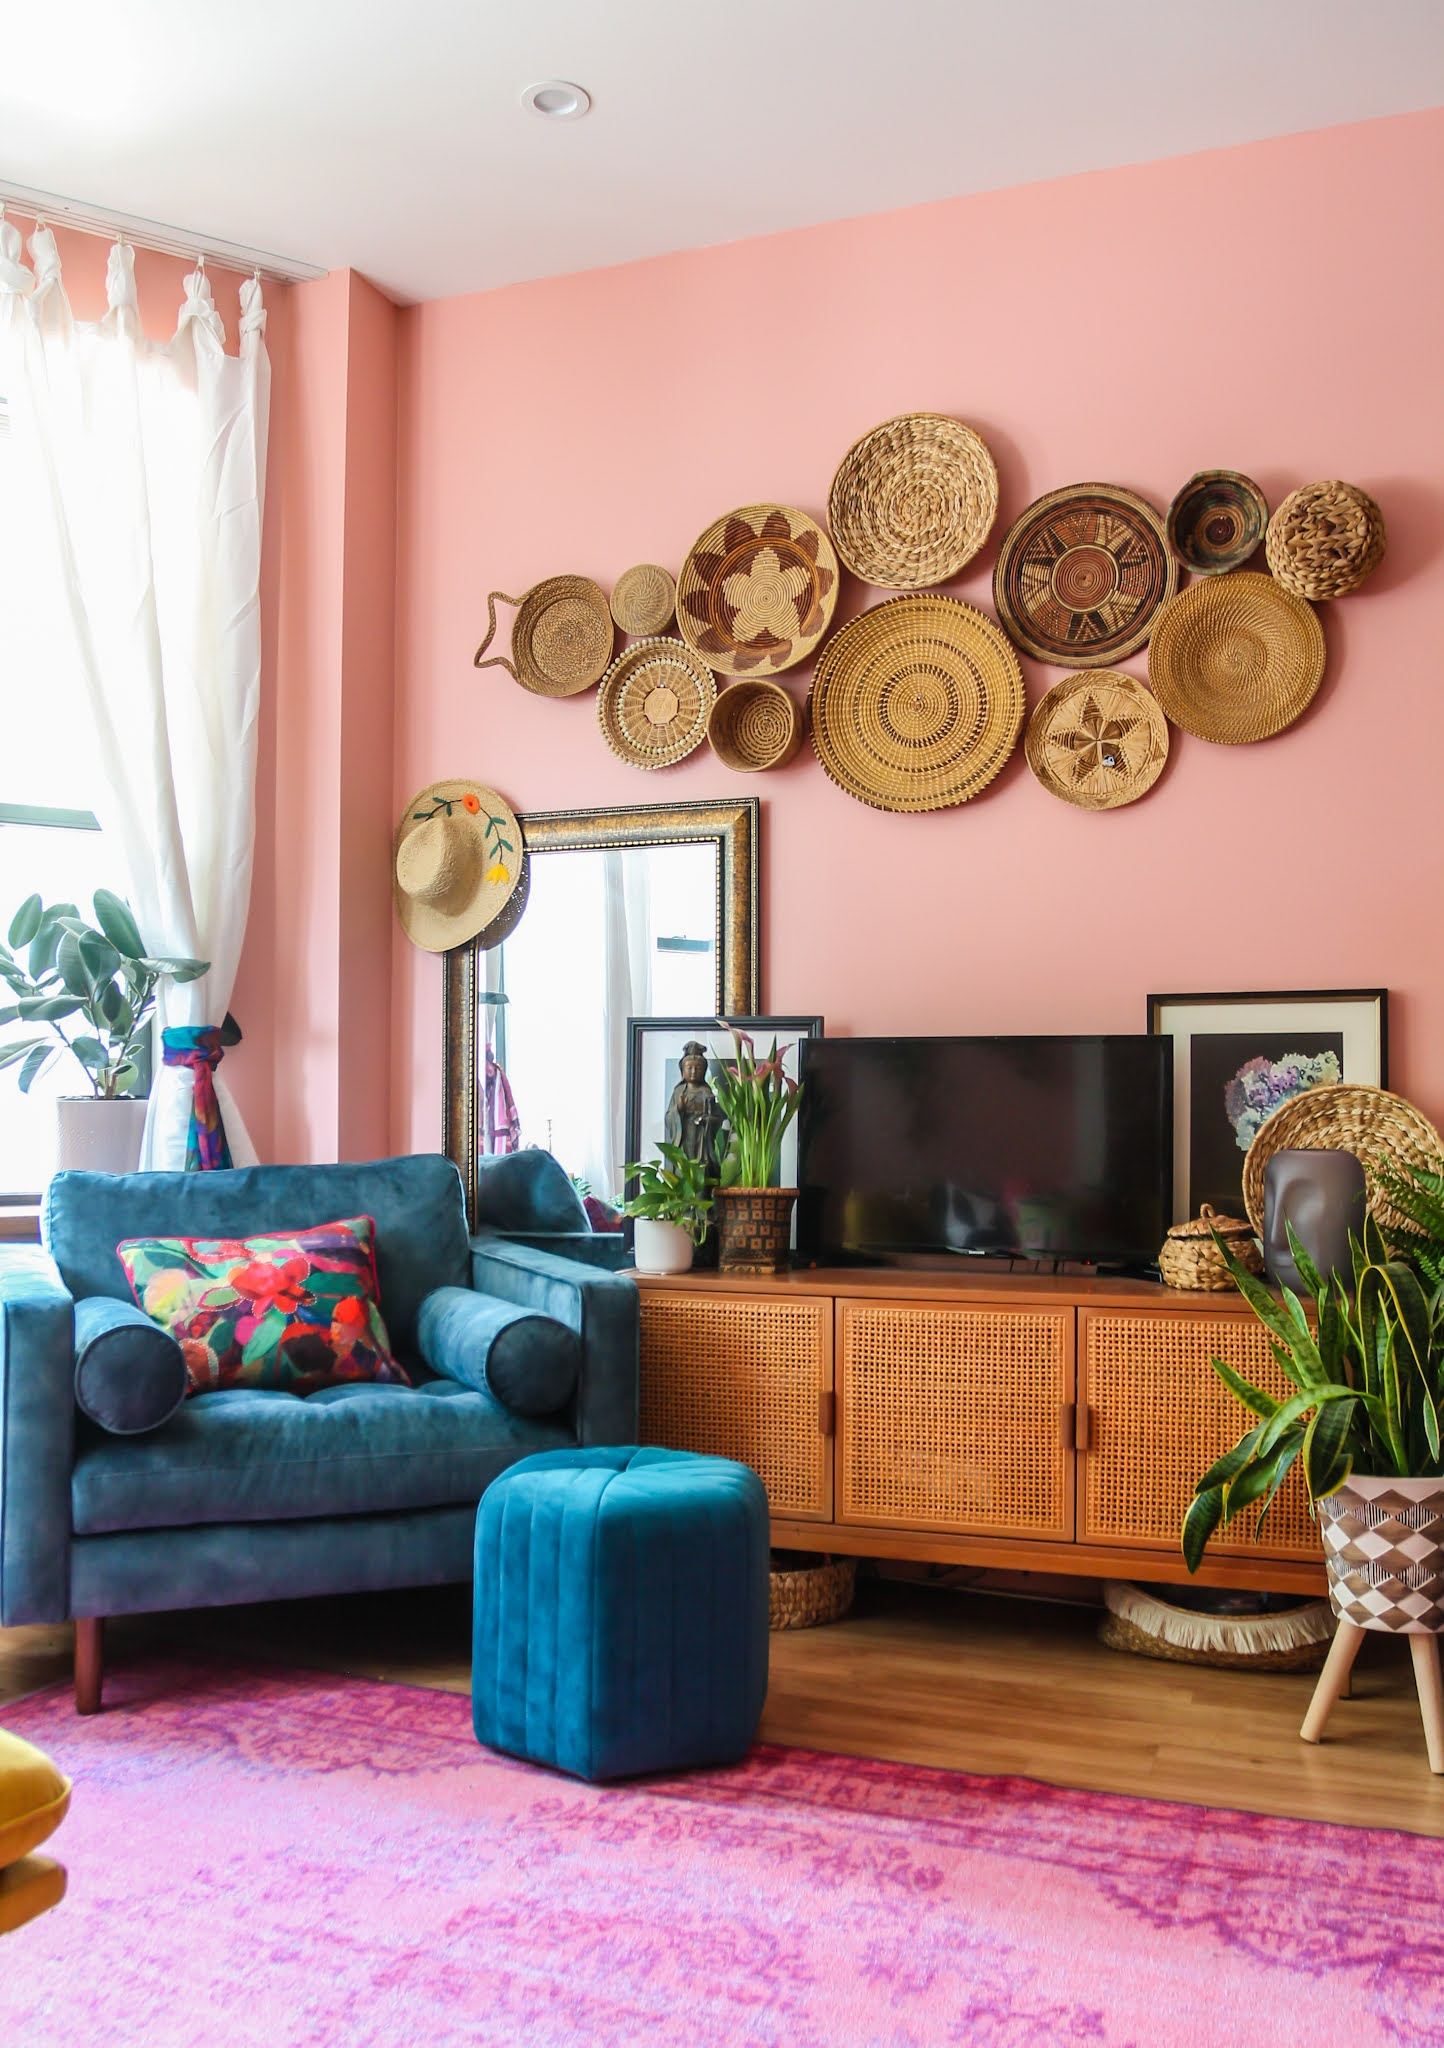 blue velvet chair // colorful homes // pink living room // boho home decor ideas // home decor // maximalist // NYC apartments // colorful maximalist // small space homes // living room decor Ideas // colorful living room // pink and blue living room // basket wall